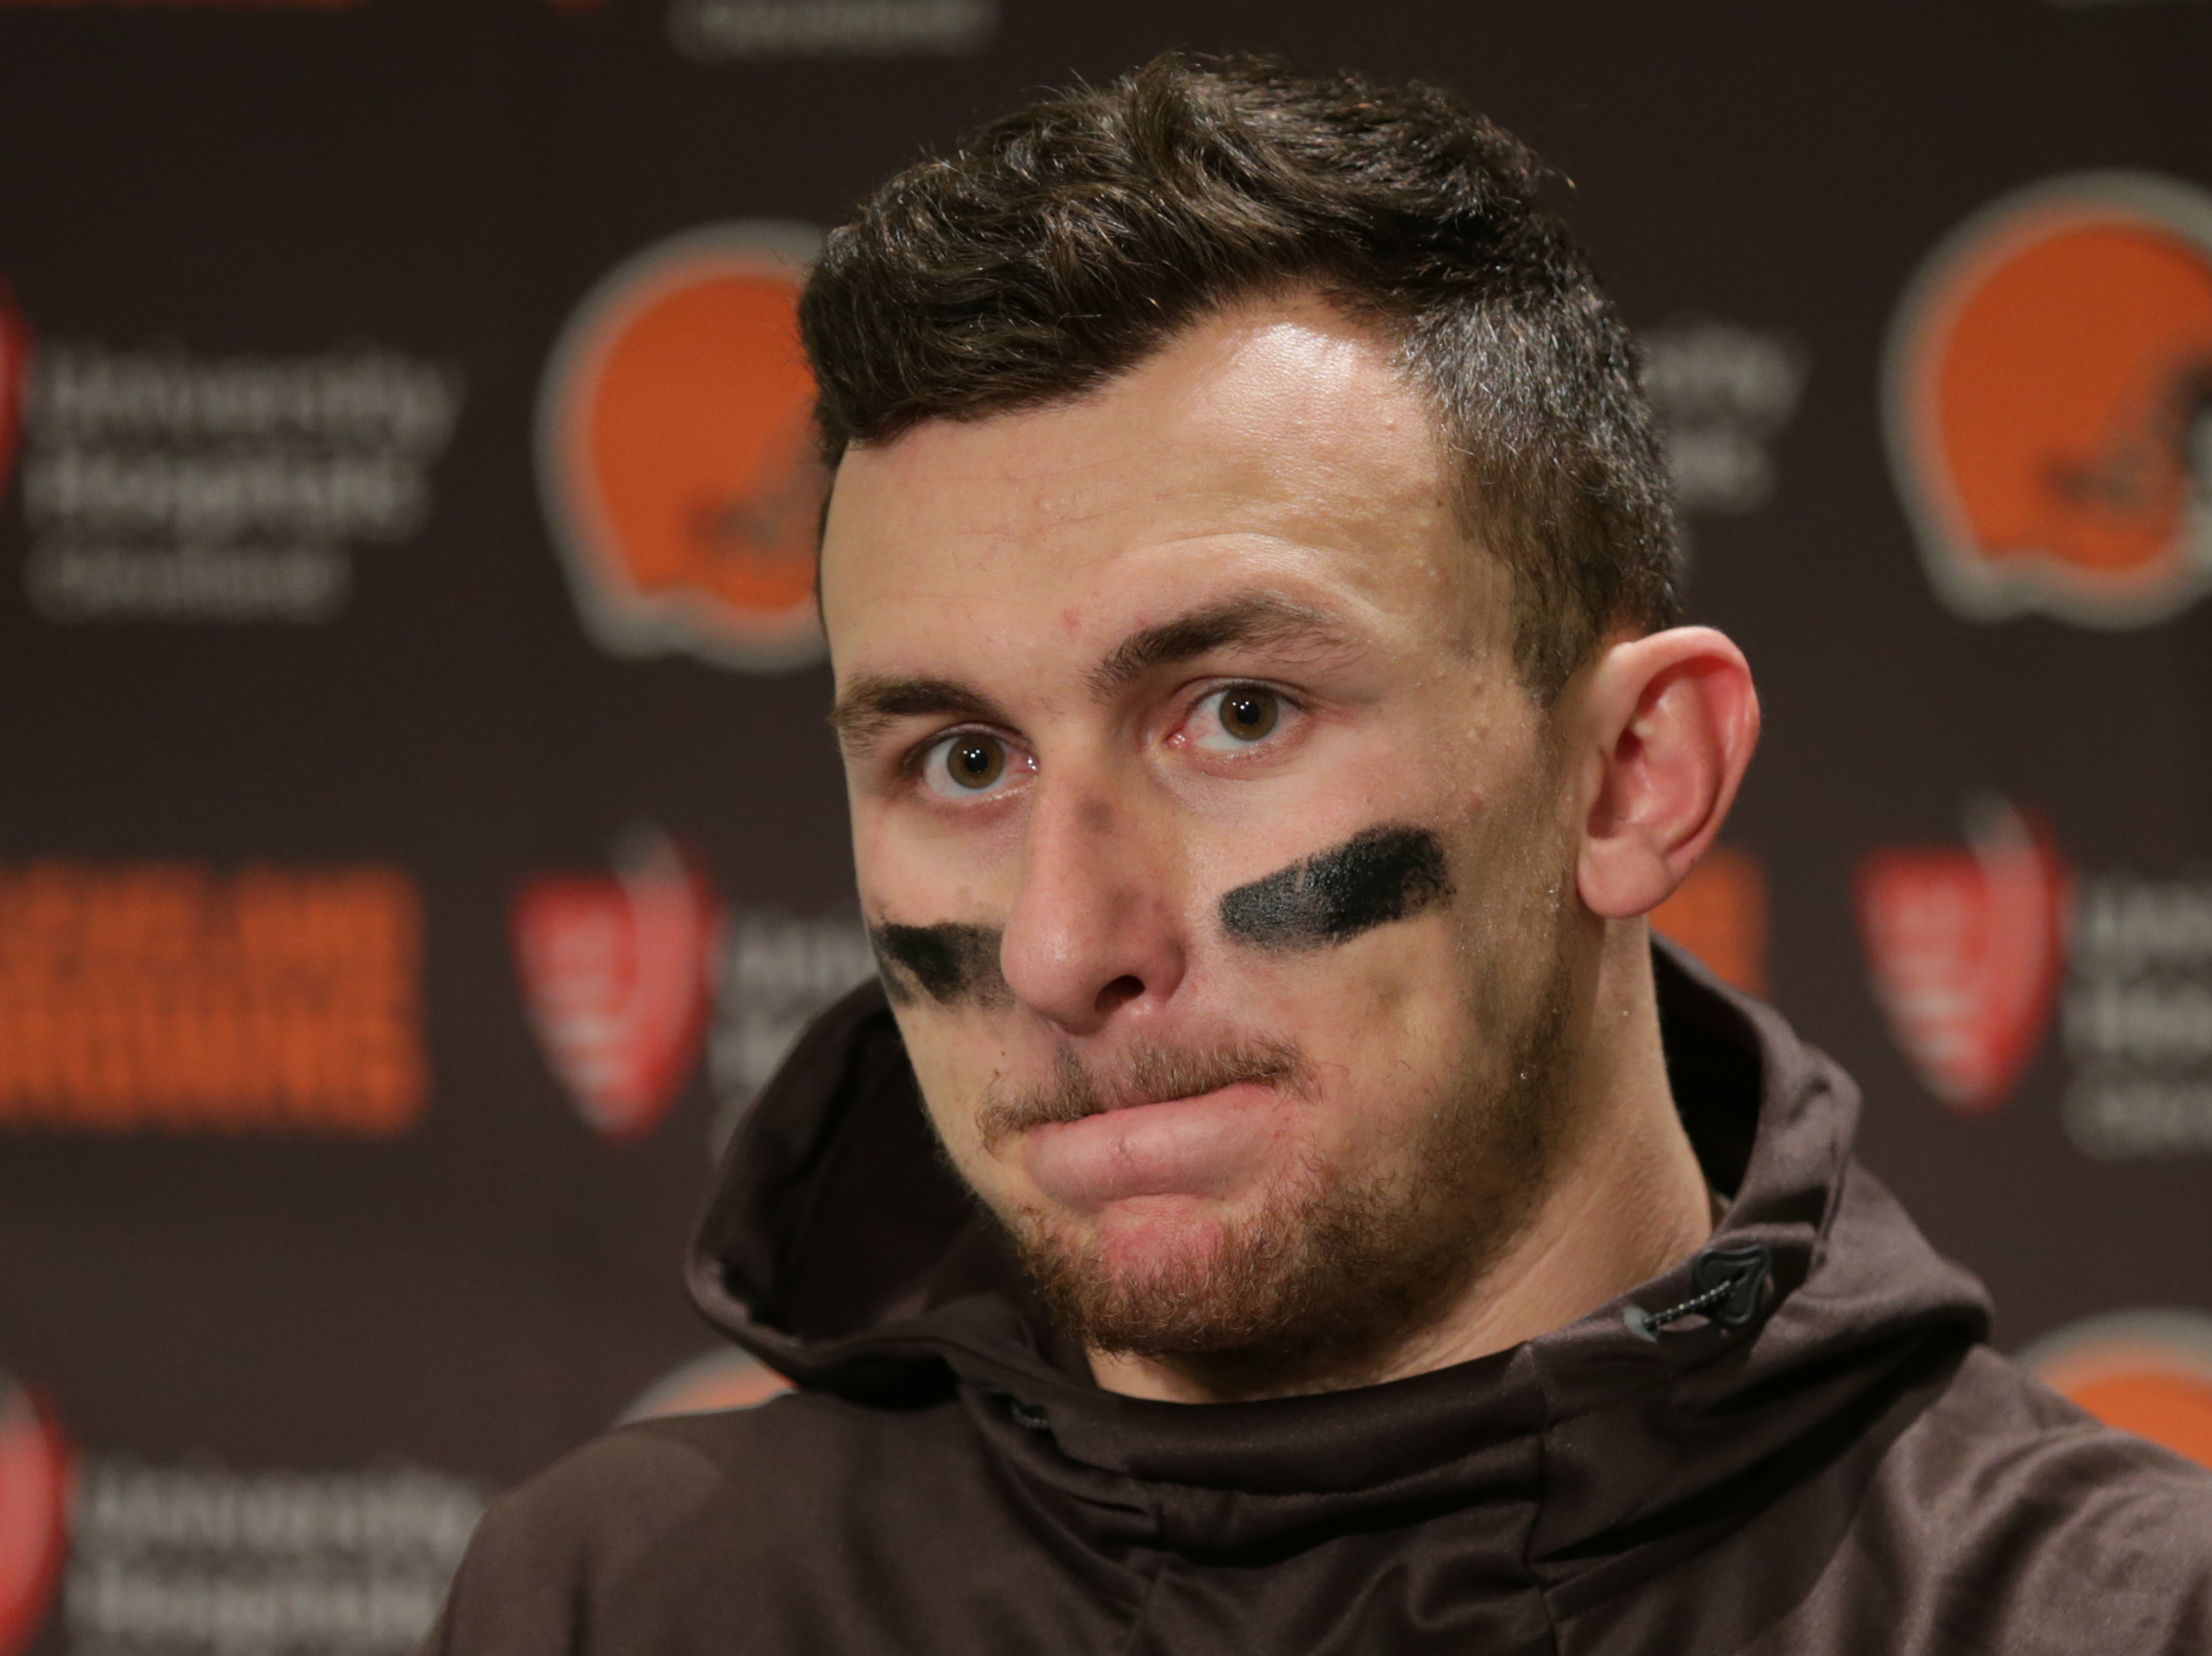 FILE - In this Dec. 20, 2015, file photo, Cleveland Browns quarterback Johnny Manziel speaks with media members following the team's 30-13 loss to the Seattle Seahawks in an NFL football game, in Seattle. Cleveland did not release Manziel on Wednesday, Ma